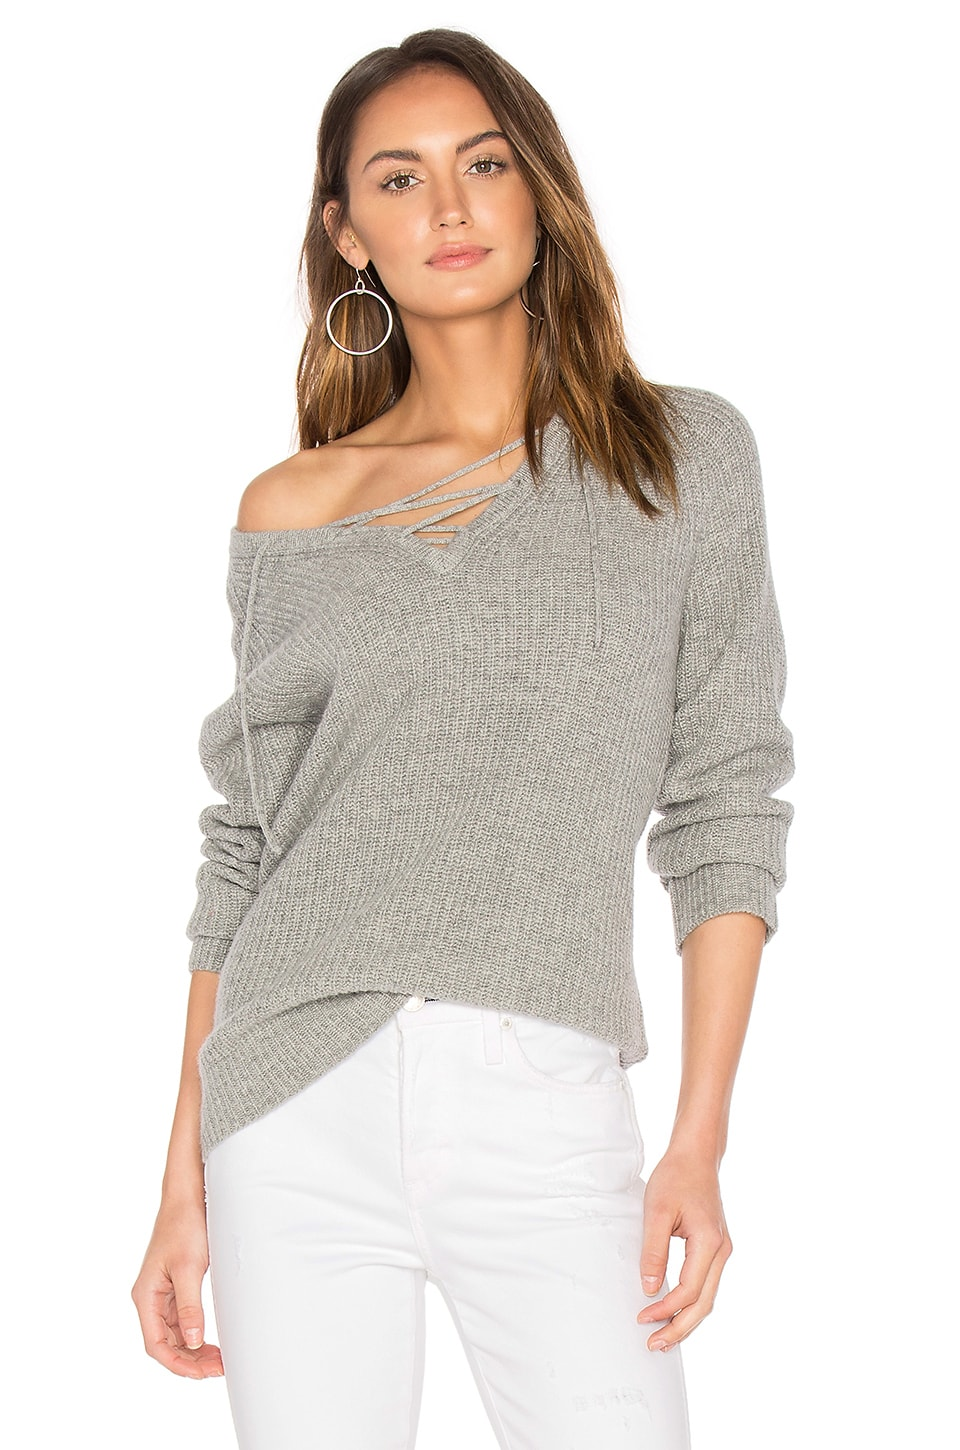 Leeds Lace Up Sweater by Central Park West